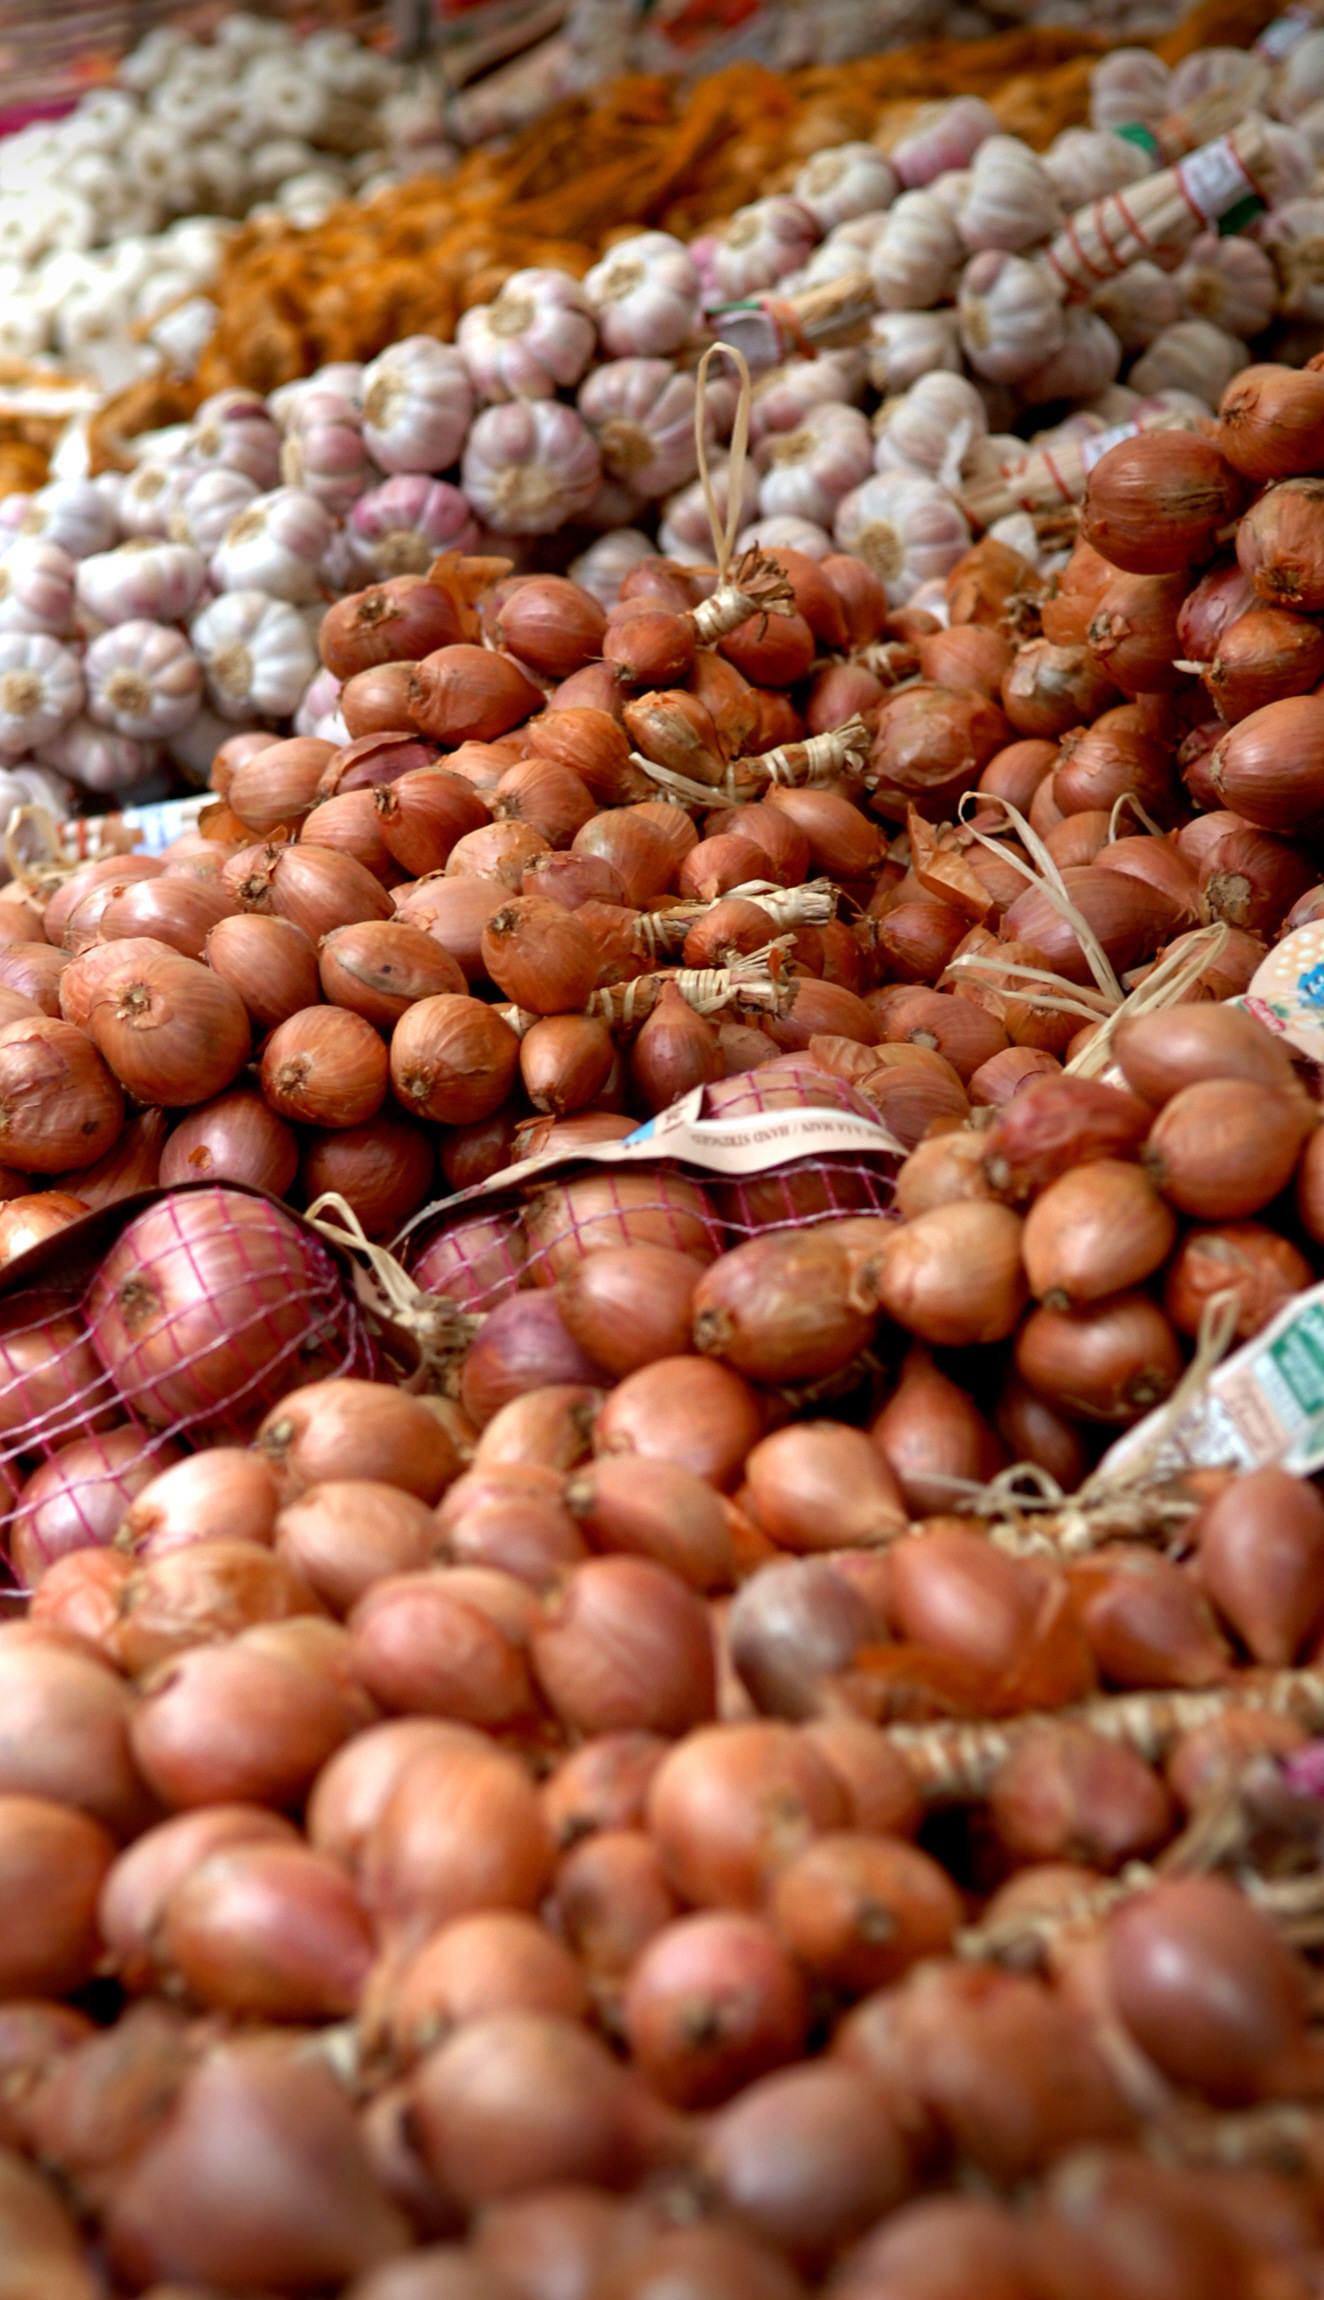 Onions, which like leeks and garlic are members of the allium family, have been renowned for their health-giving properties for centuries